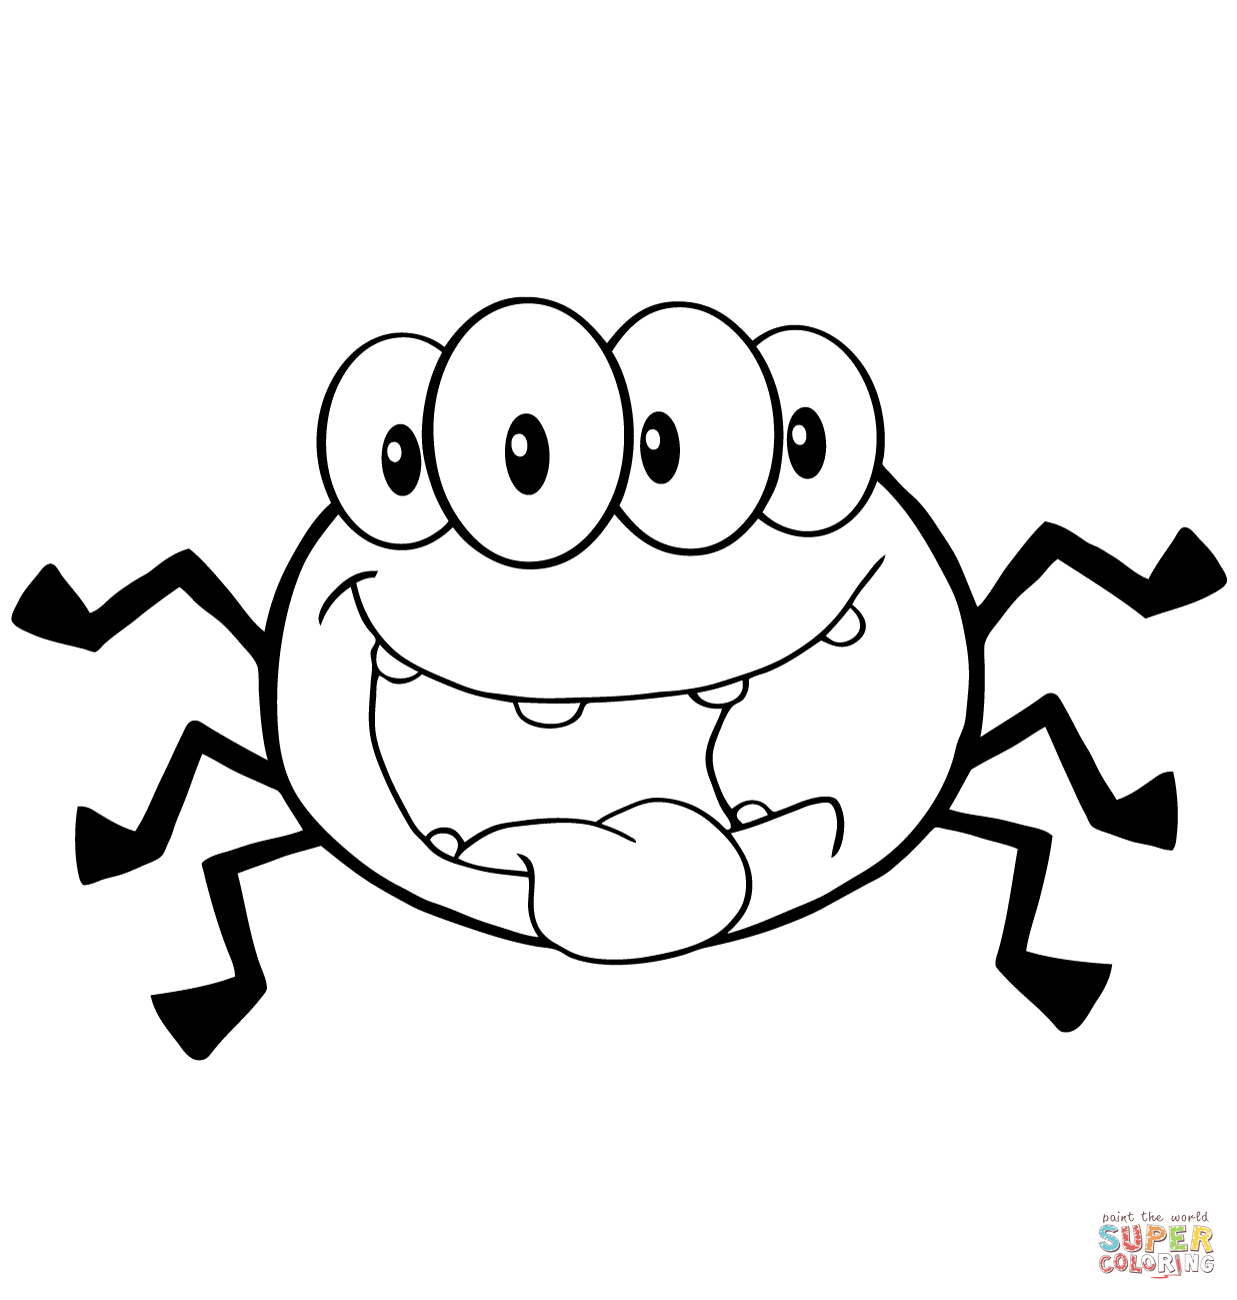 1237x1300 How To Draw A Halloween Spider Step By Step, Spiders Coloring